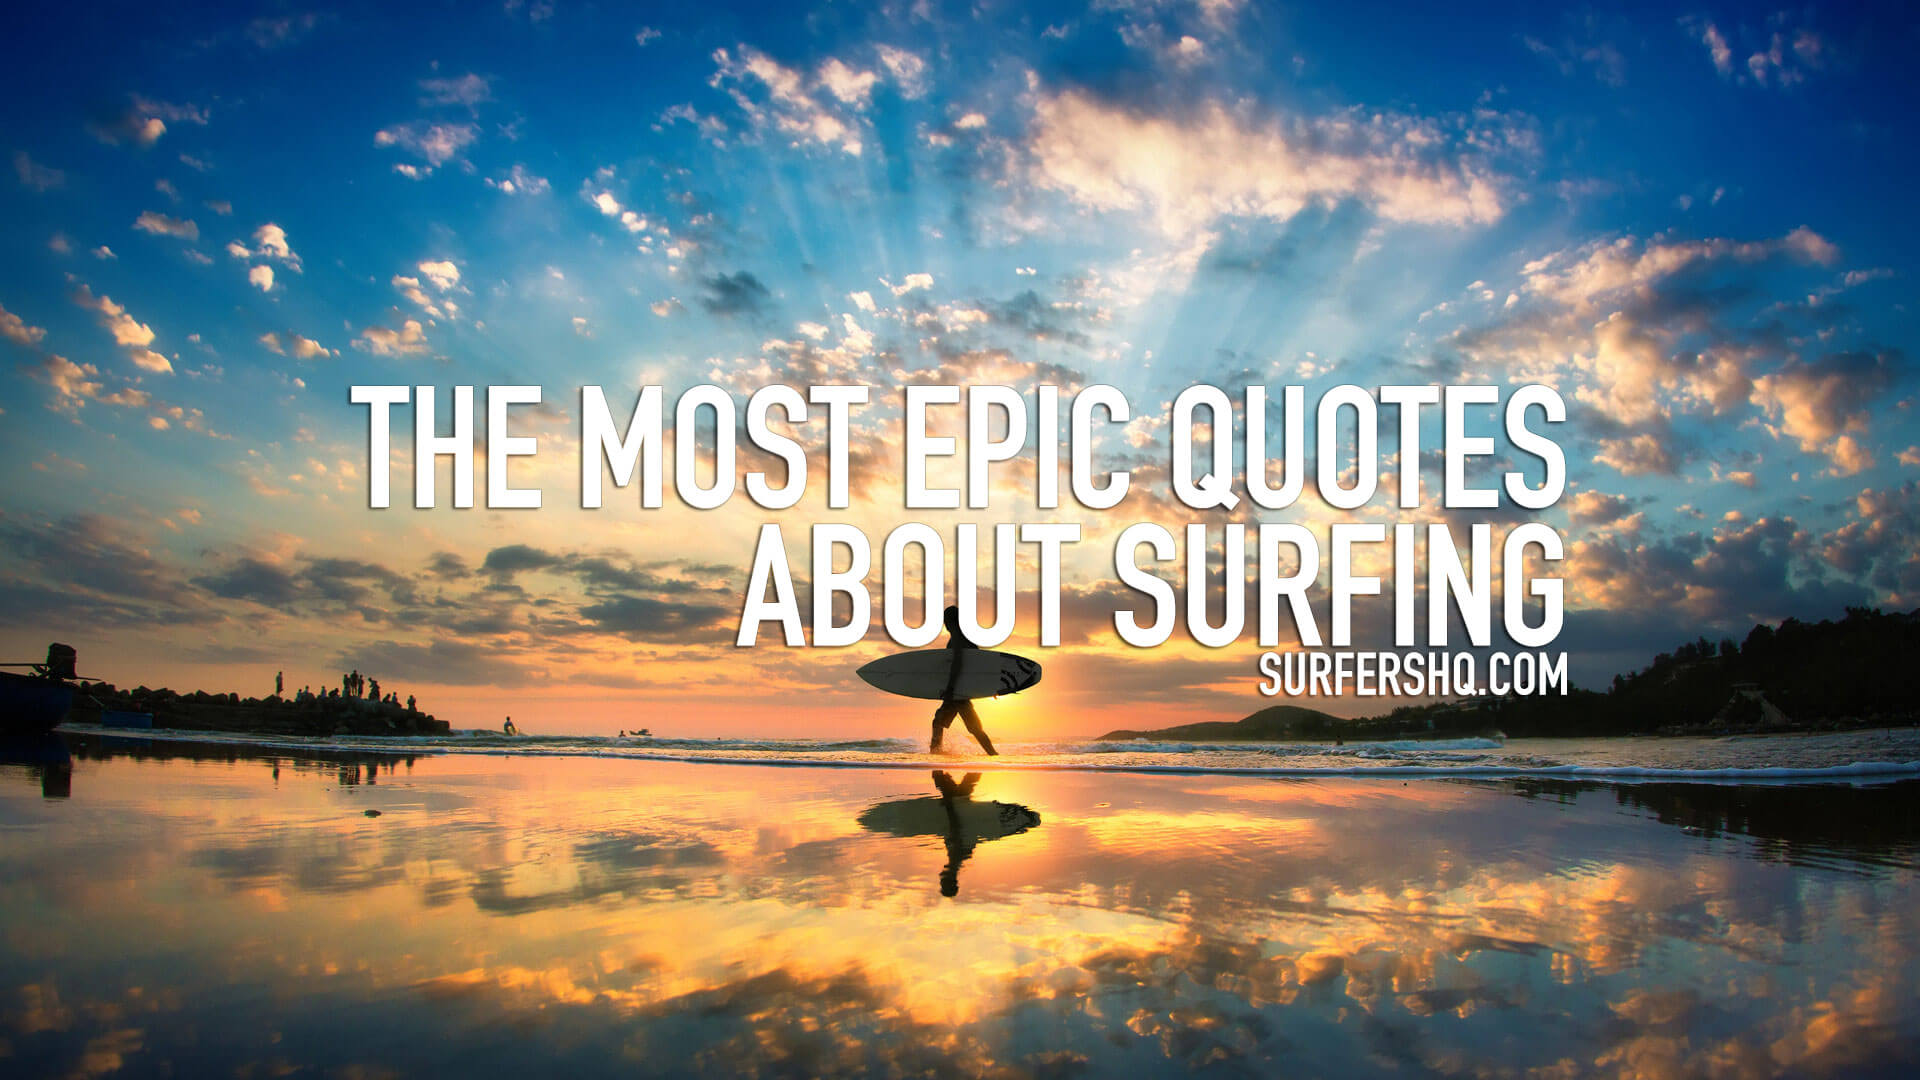 Good Quotes Wallpaper For Facebook The Most Epic Quotes About Surfing Surfers Hq